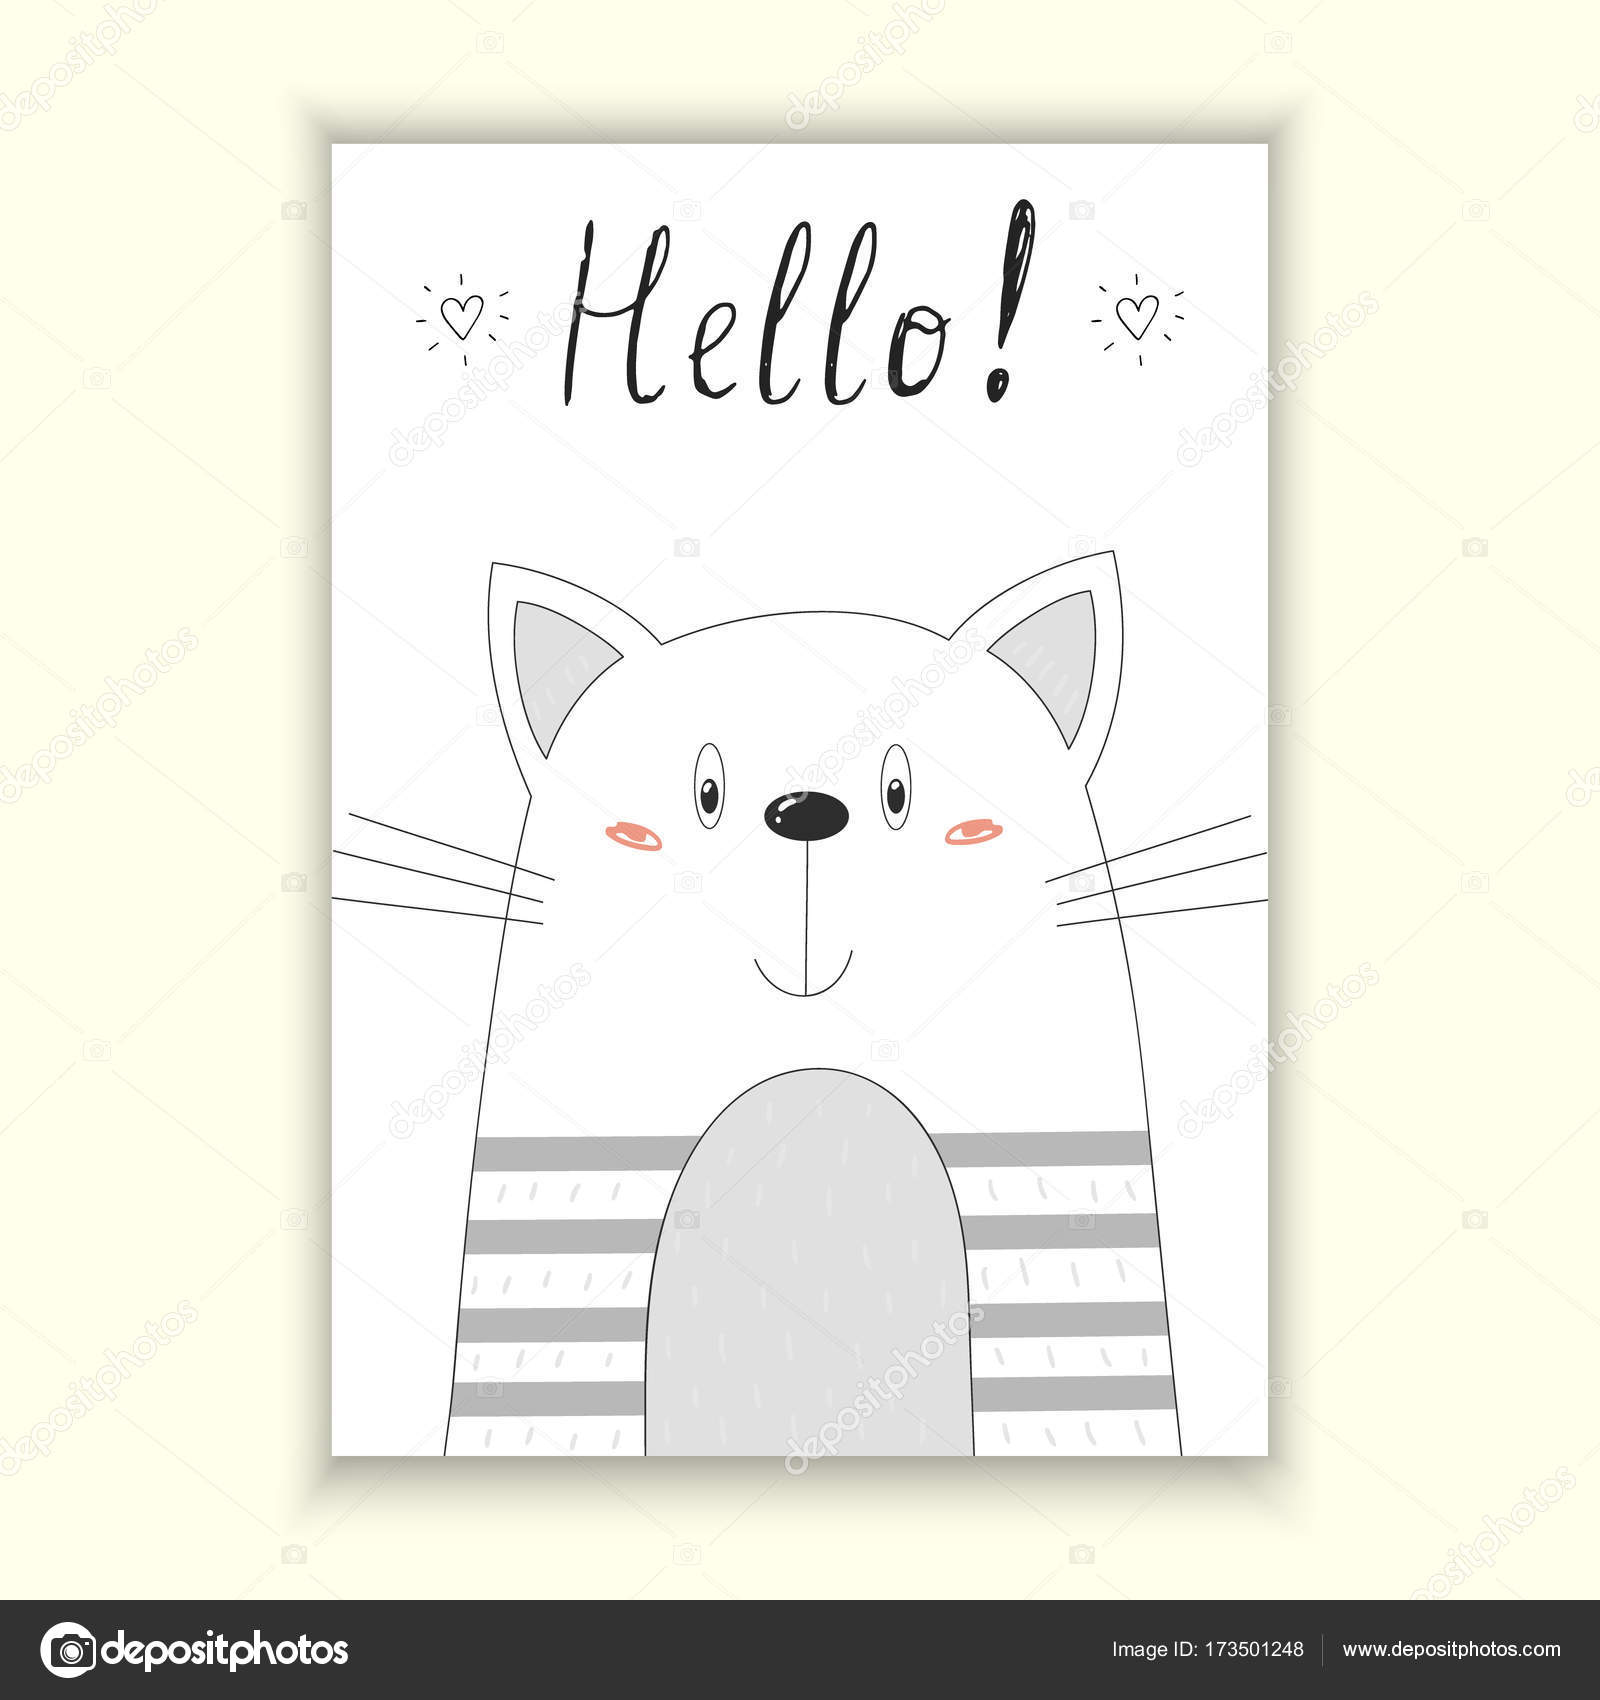 graphic regarding Cat Birthday Card Printable titled Printable humorous cat birthday playing cards Howdy card. Hand Drawn